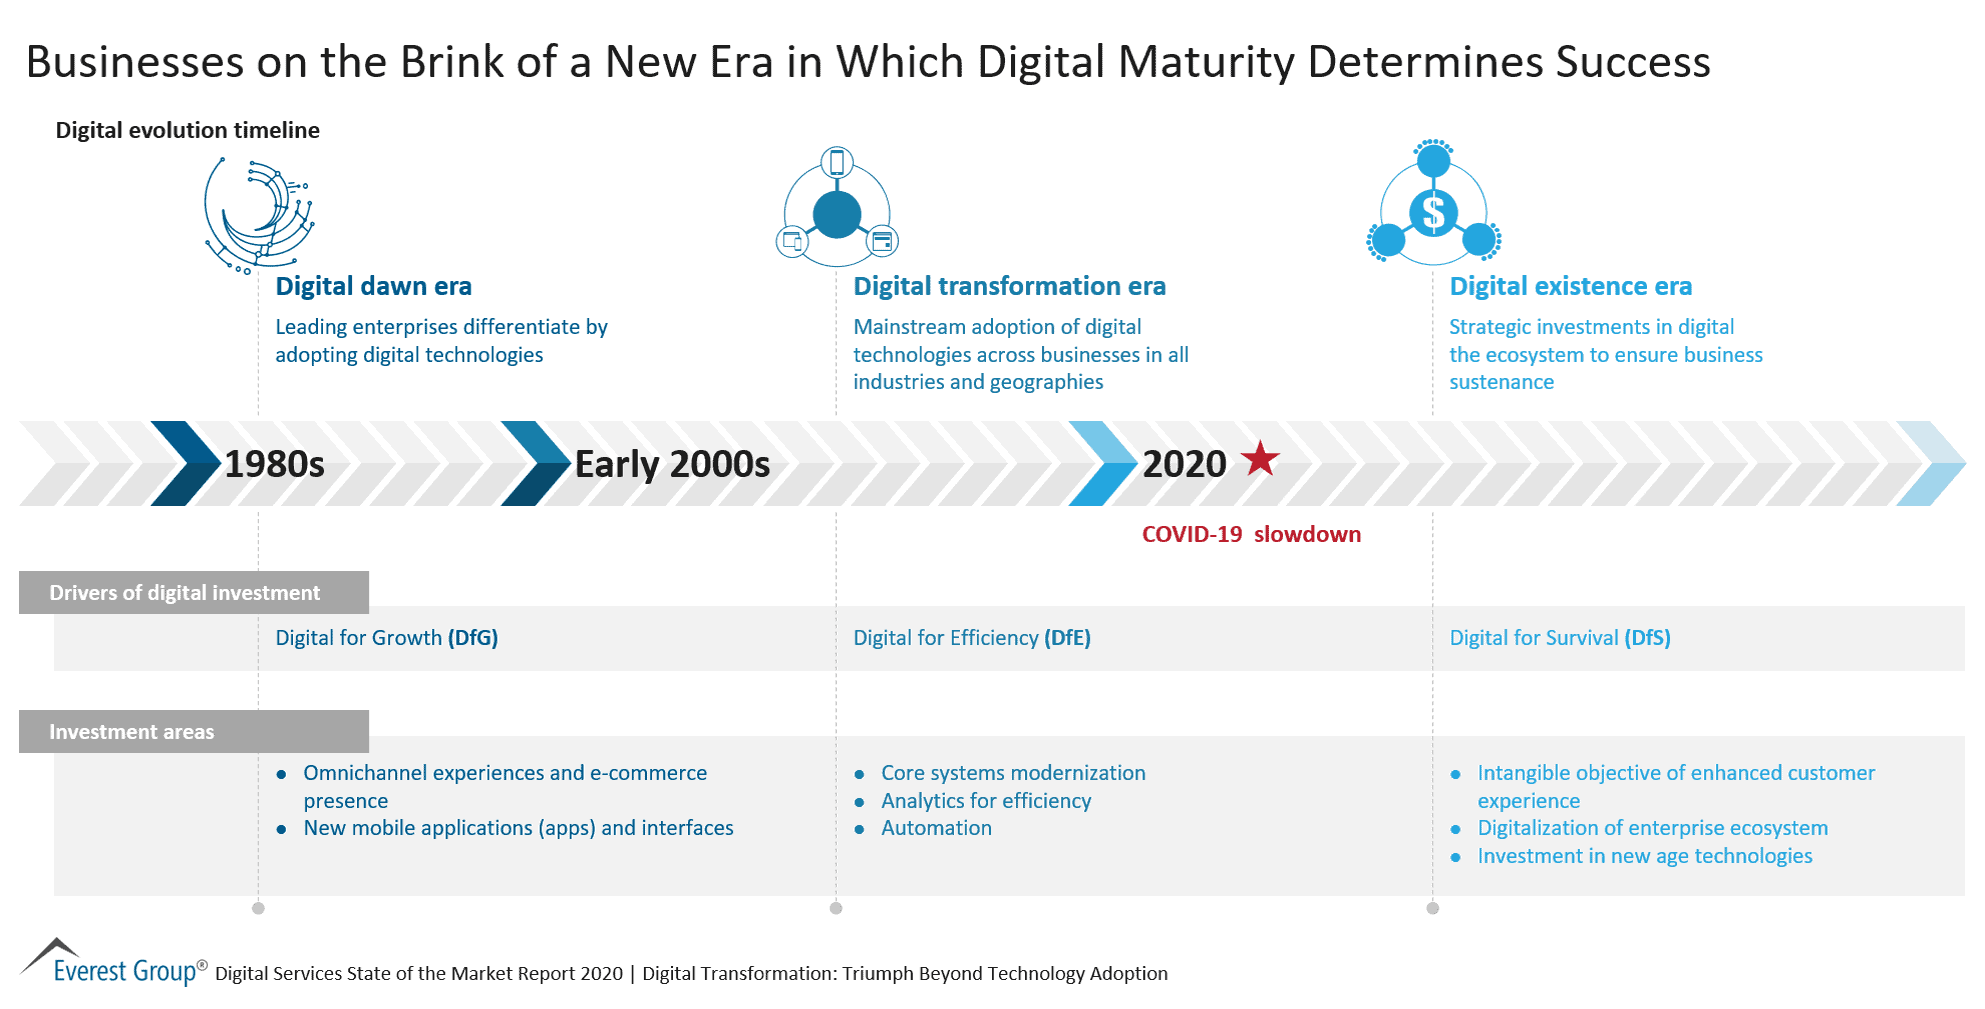 Businesses on the Brink of a New Era in Which Digital Maturity Determines Success